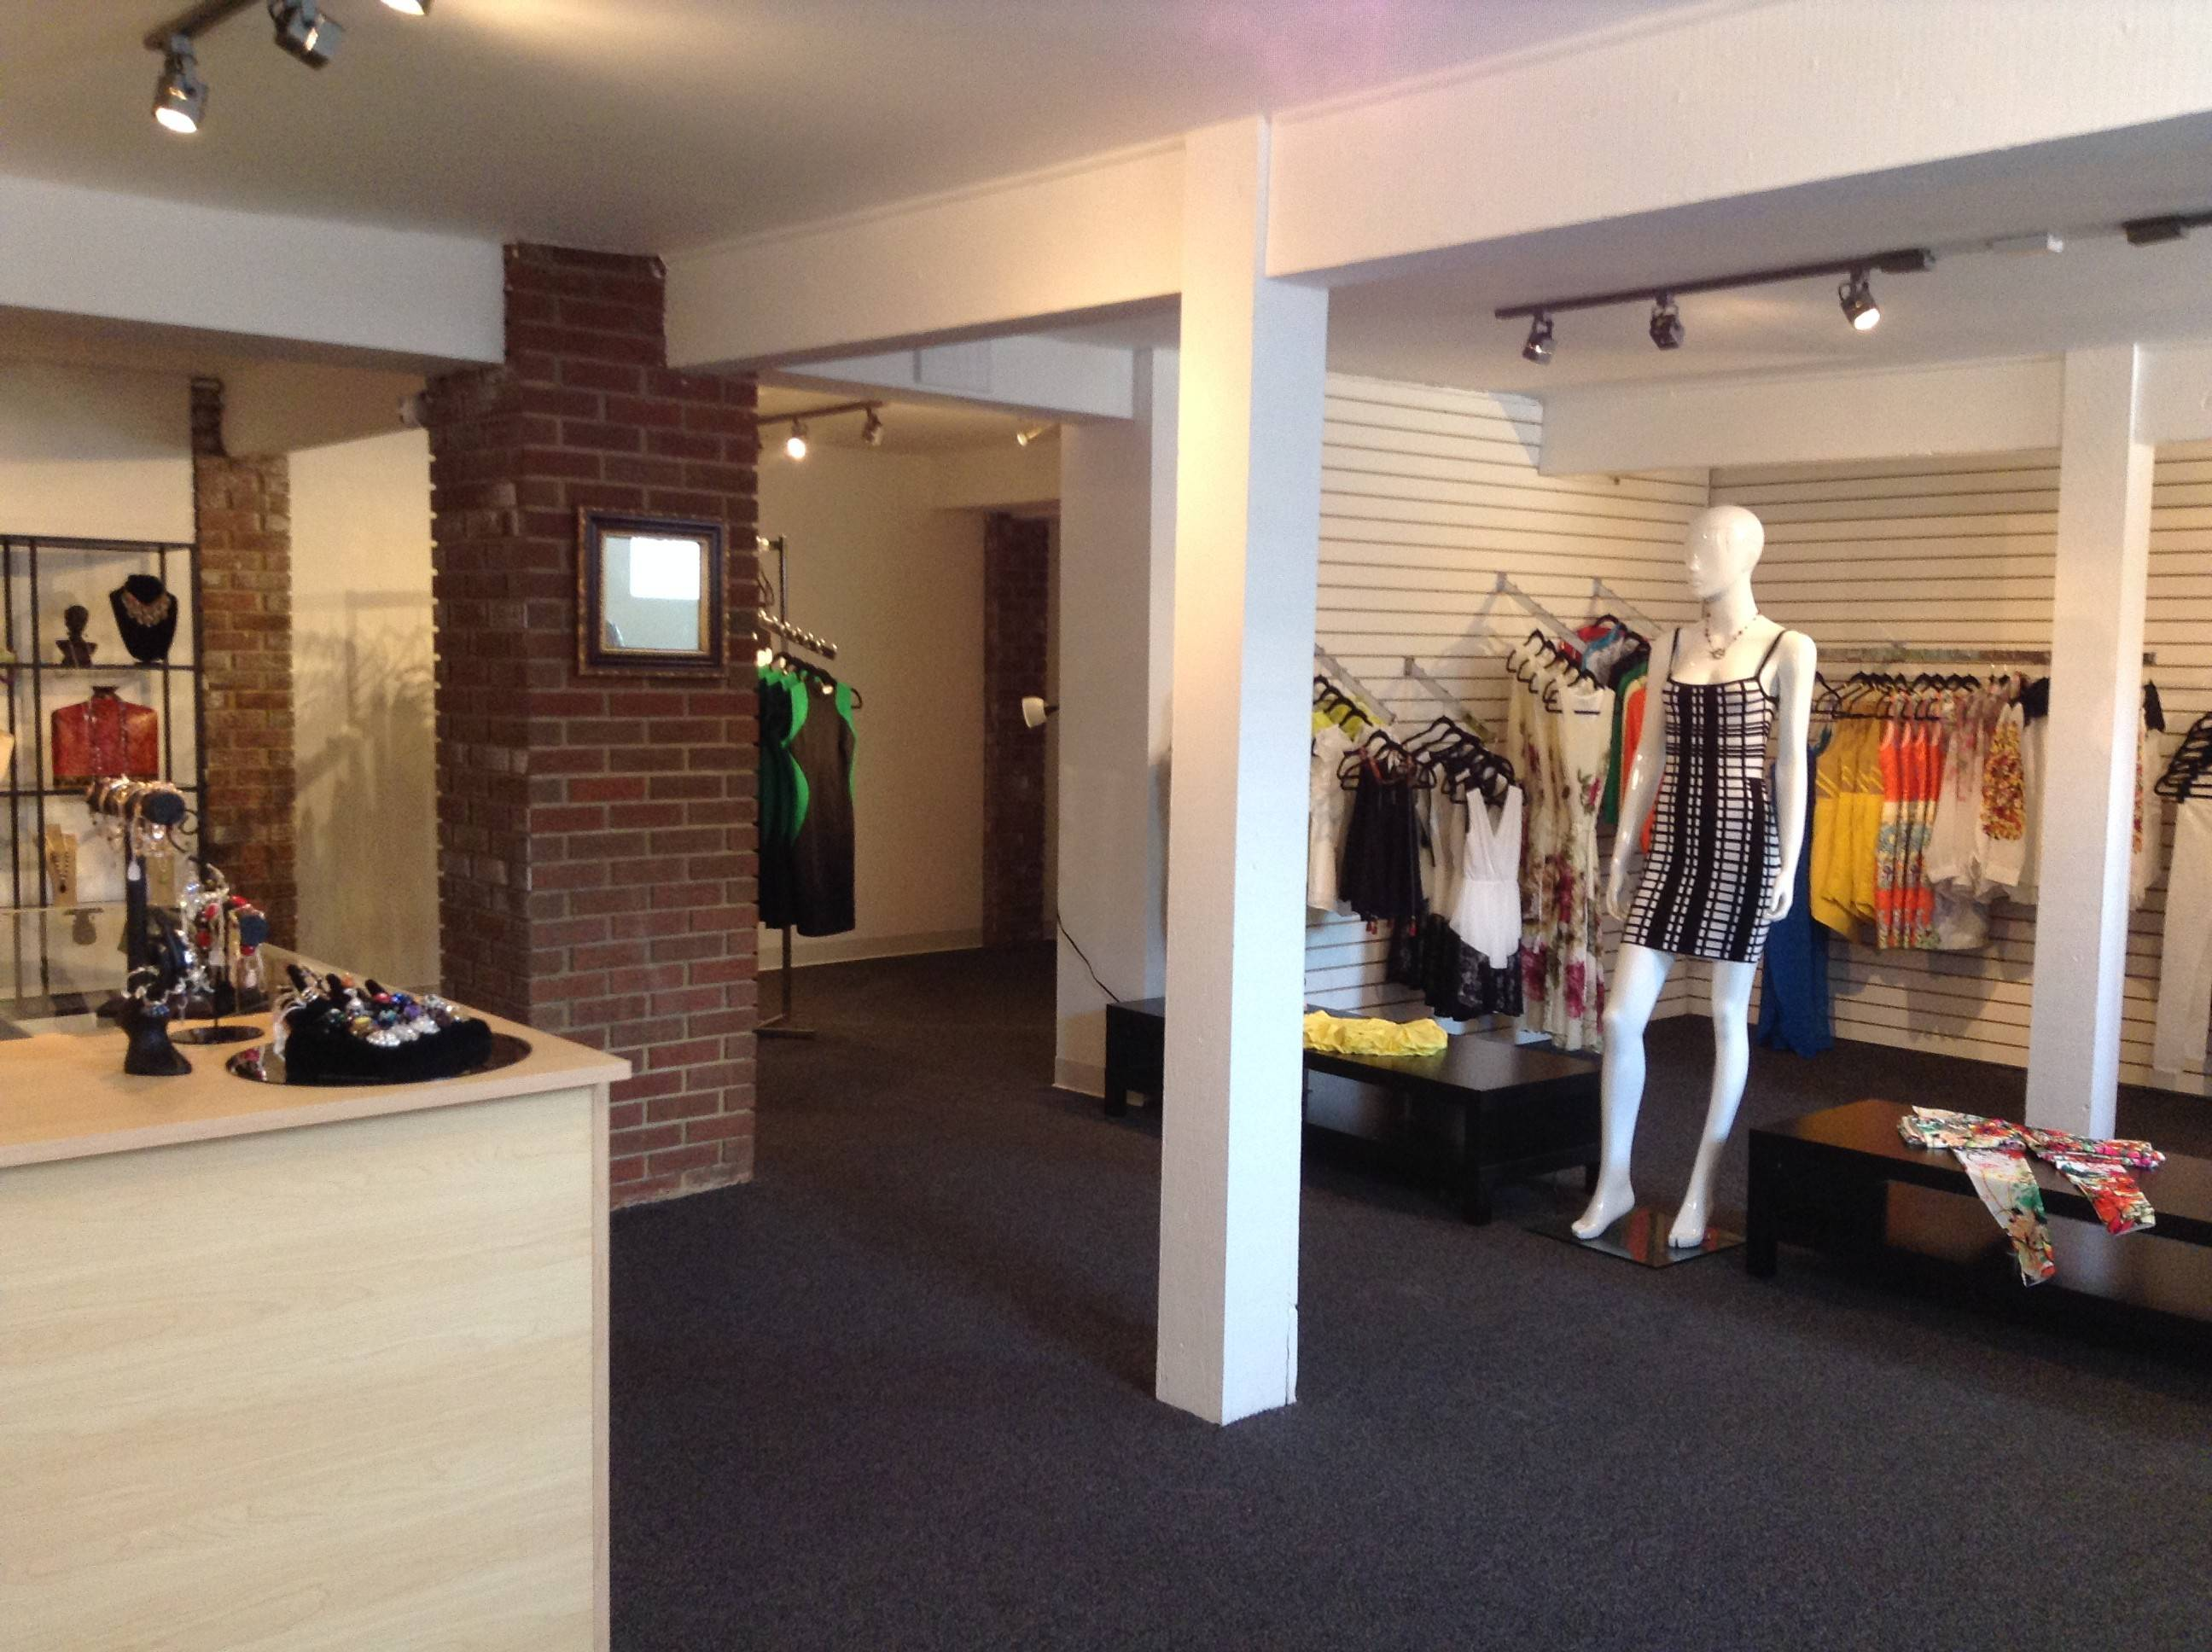 Glen Ellyn's new women's clothing and jewelry store, e & e aubé Designs, located at 477 Forest Ave, will offer clothes as well as handmade jewelry.